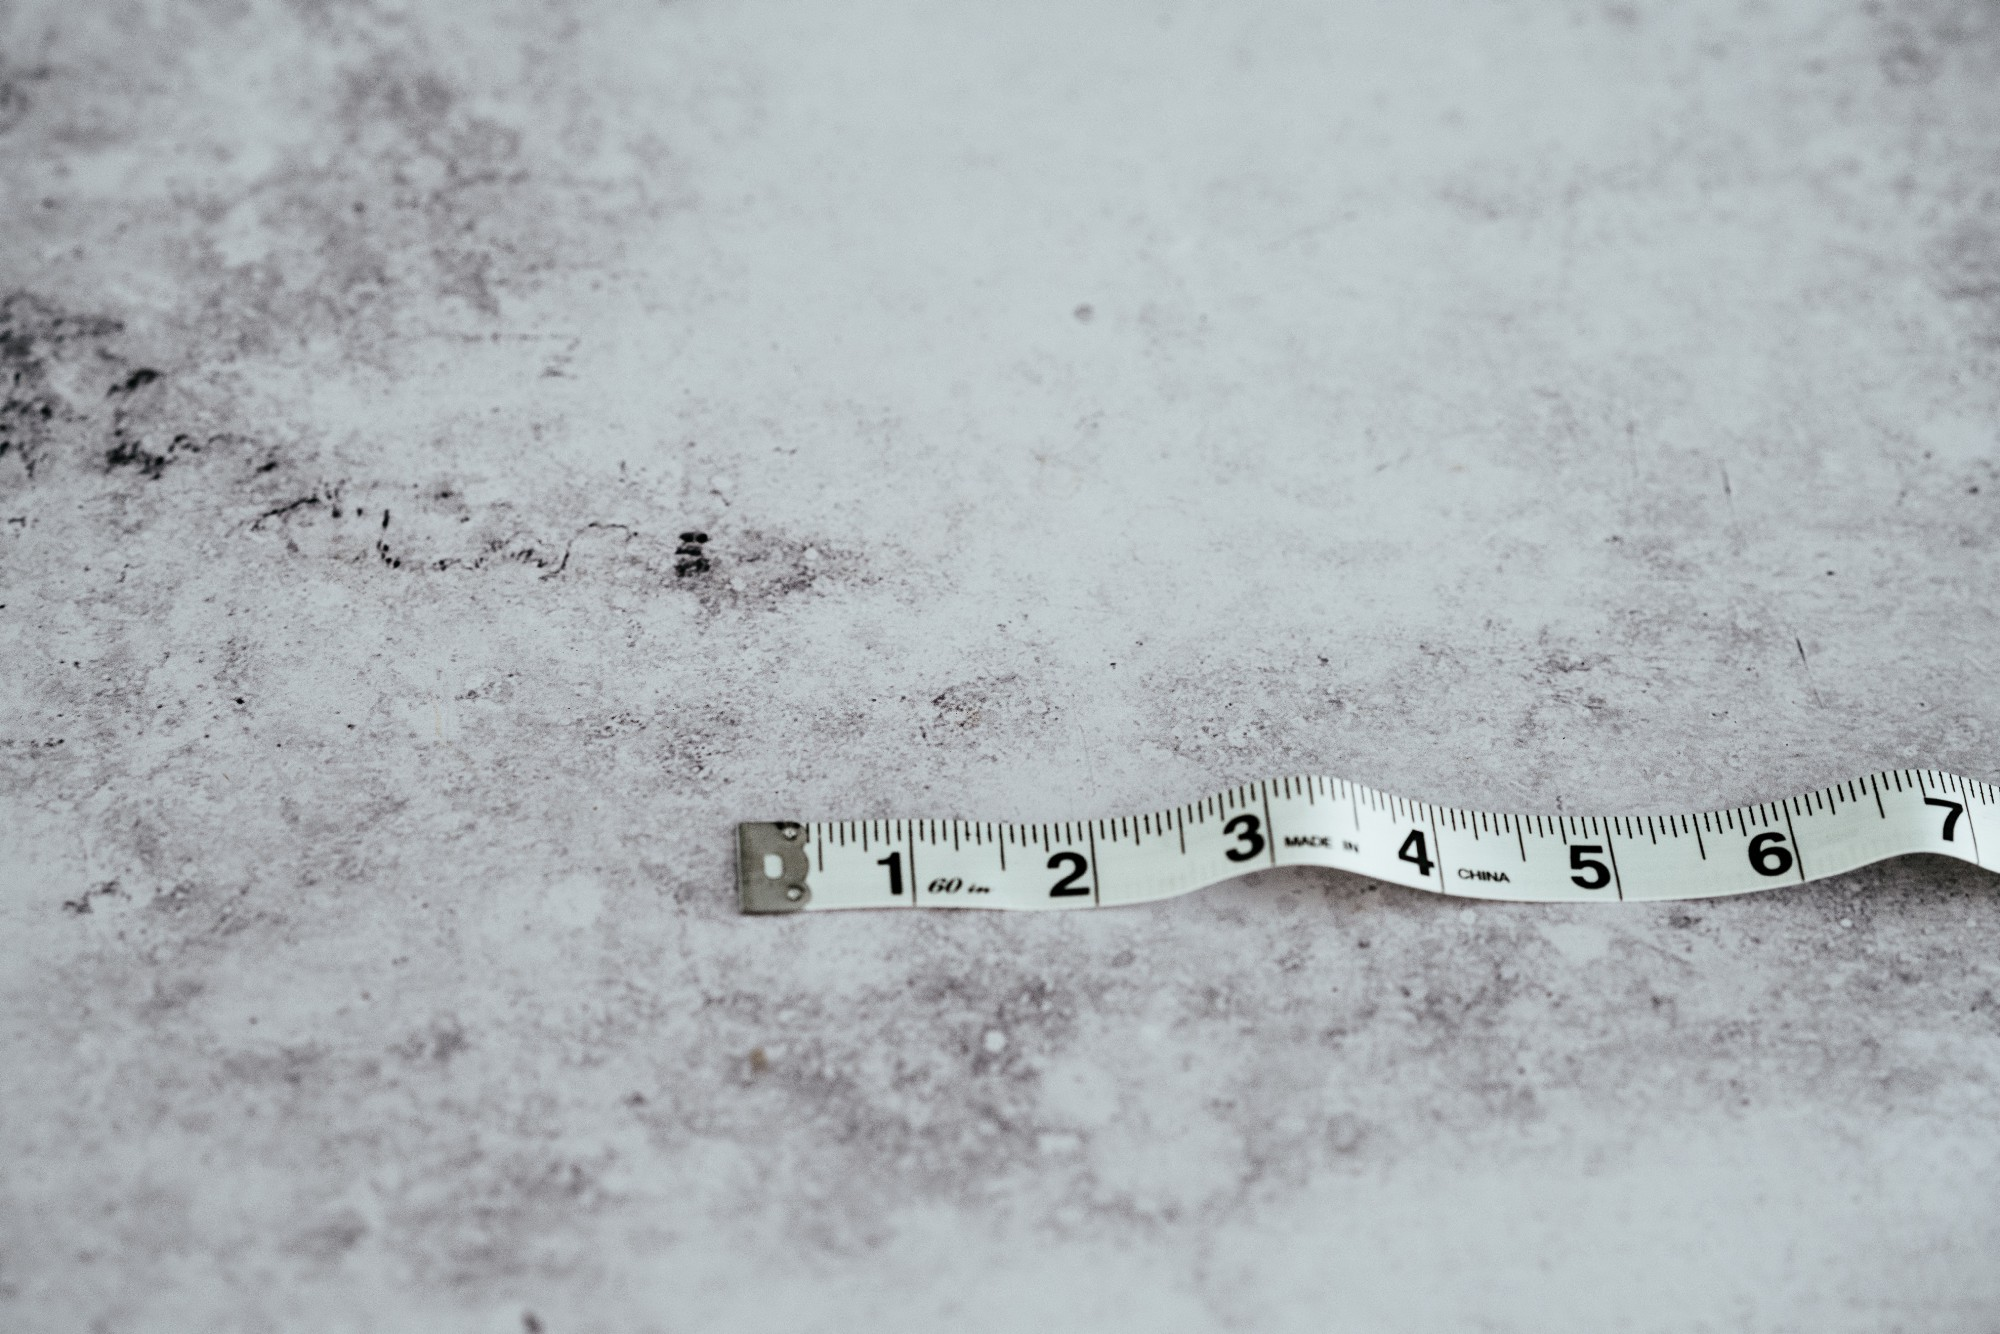 A measuring tape on the gray concrete showing the one through seven inches marks.